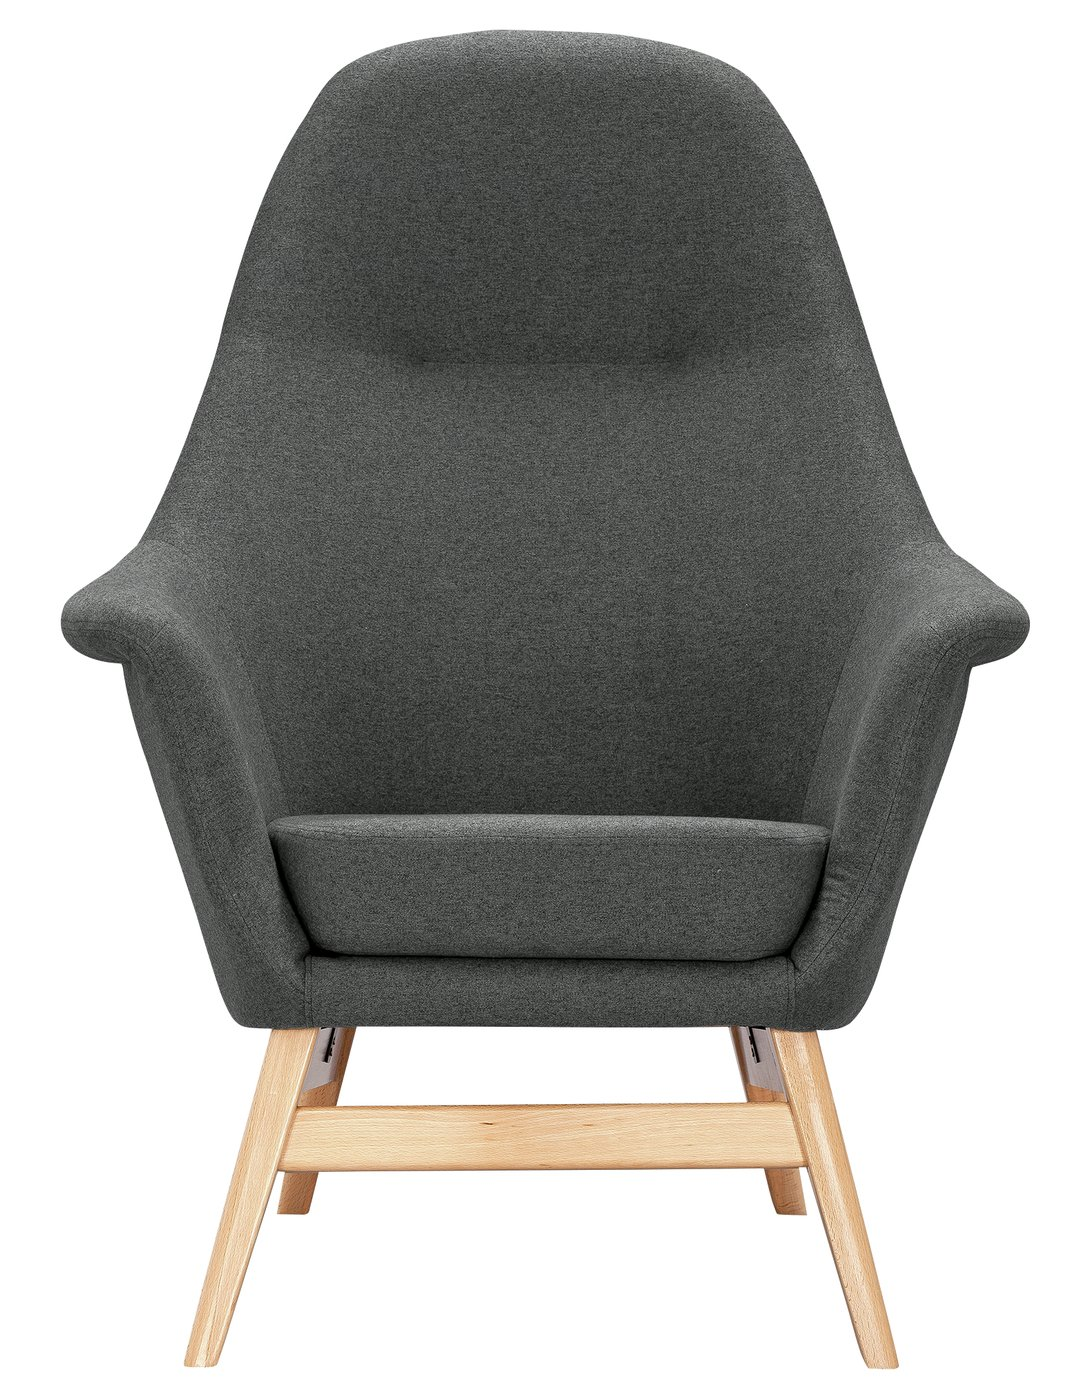 Argos Home Reuben Fabric Armchair - Charcoal